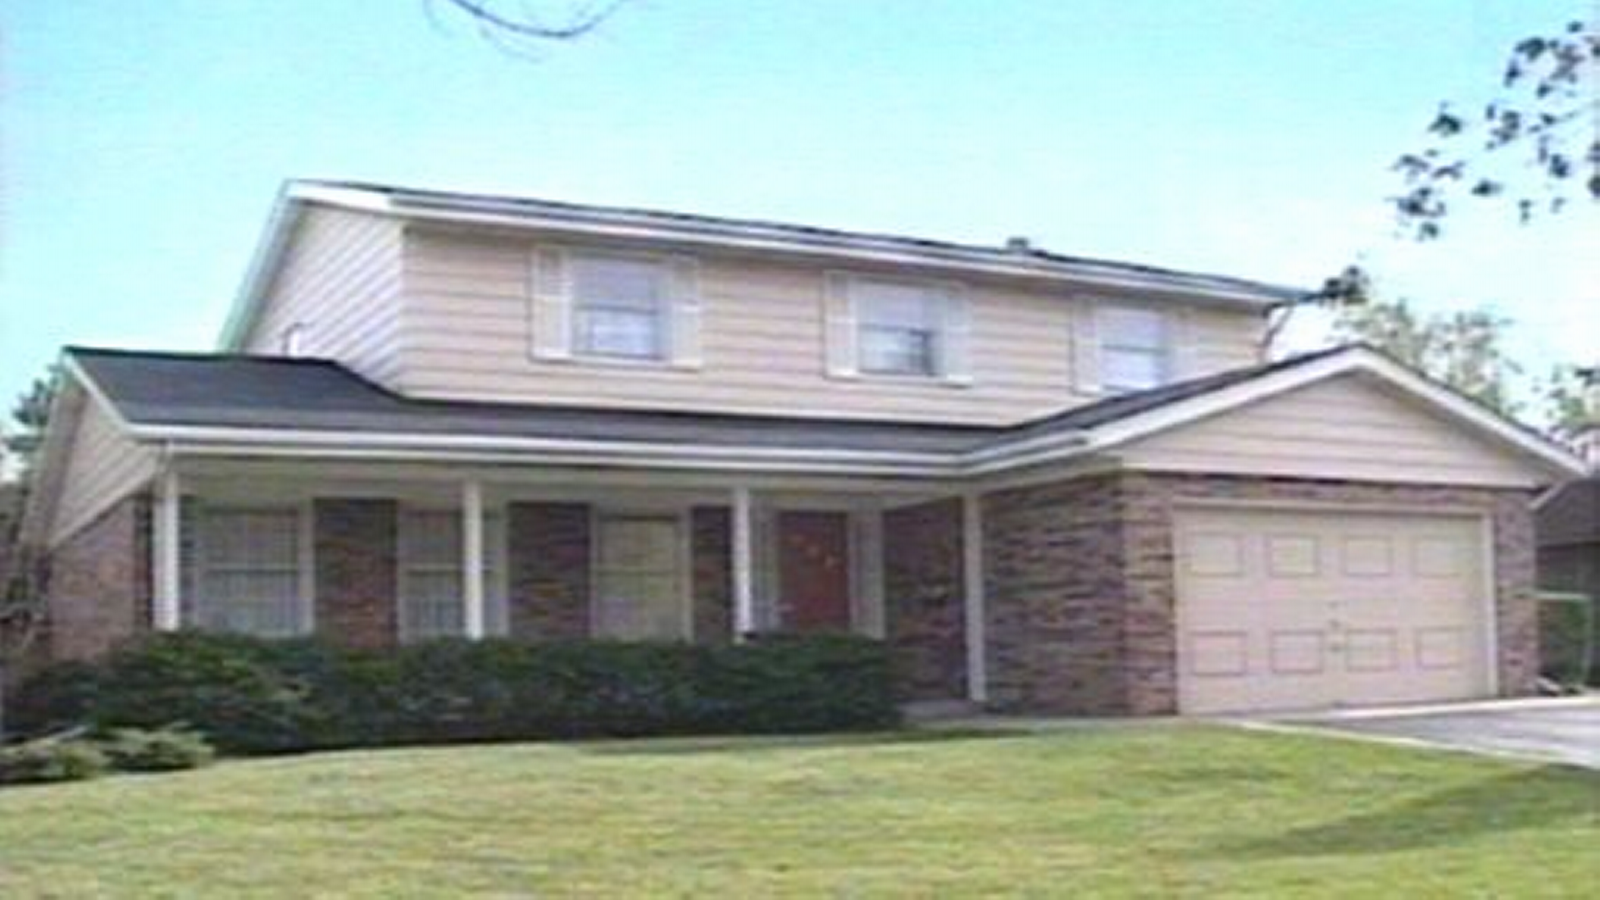 Image b married with children wiki B house